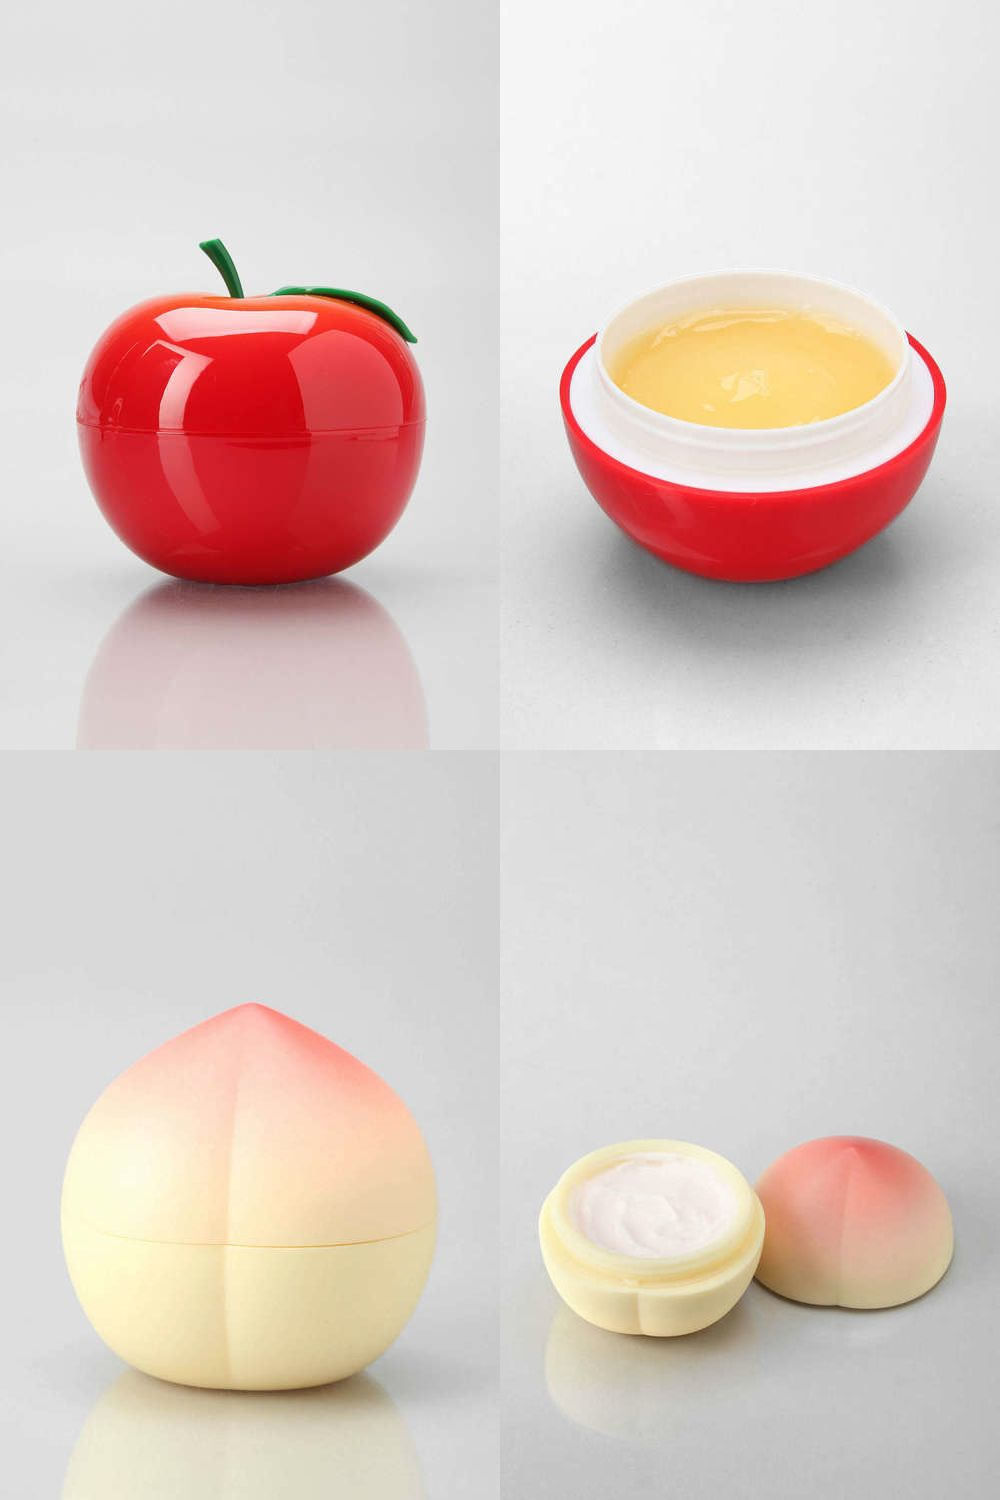 Tony Moly Skin Creams by Tony Moly  Innovative Packaging.  I like this project simply based on it's charming simple approach. This fruit shaped container where the lotion is stored to later use. I like how you are able to keep a fruit without it rotting and, instead, you're using it to keep lotion. It's also a nice collectible to have since it comes in many other fruit lotions.